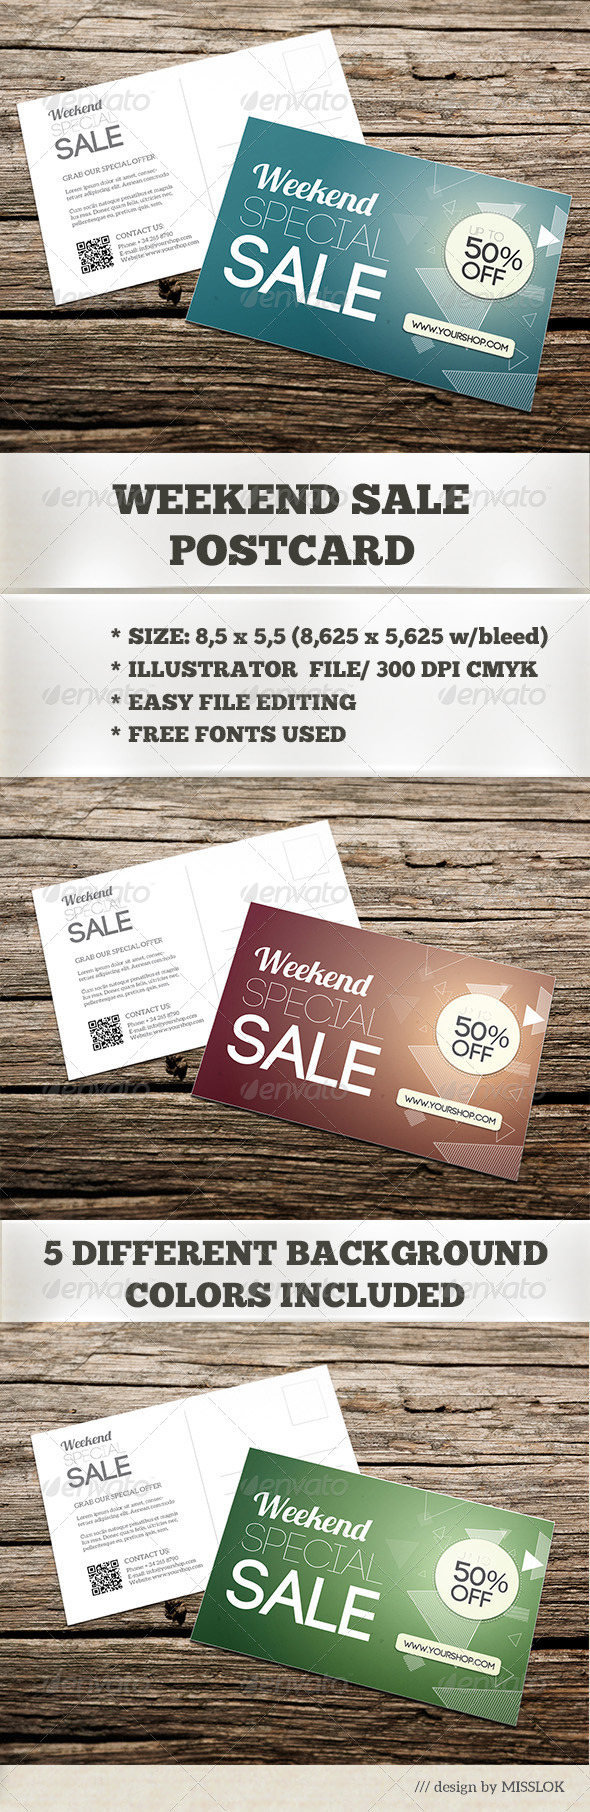 Weekend Sale Postcard/Mailer - Commerce Flyers